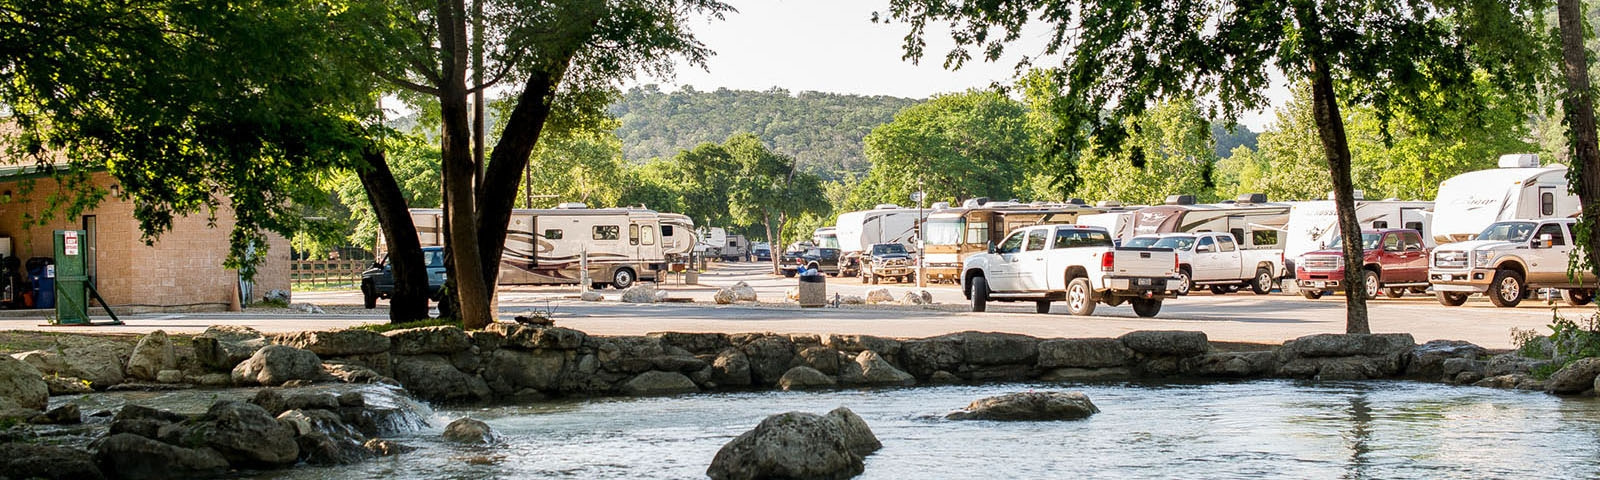 camp huaco springs New Braunfels Camping Cabins